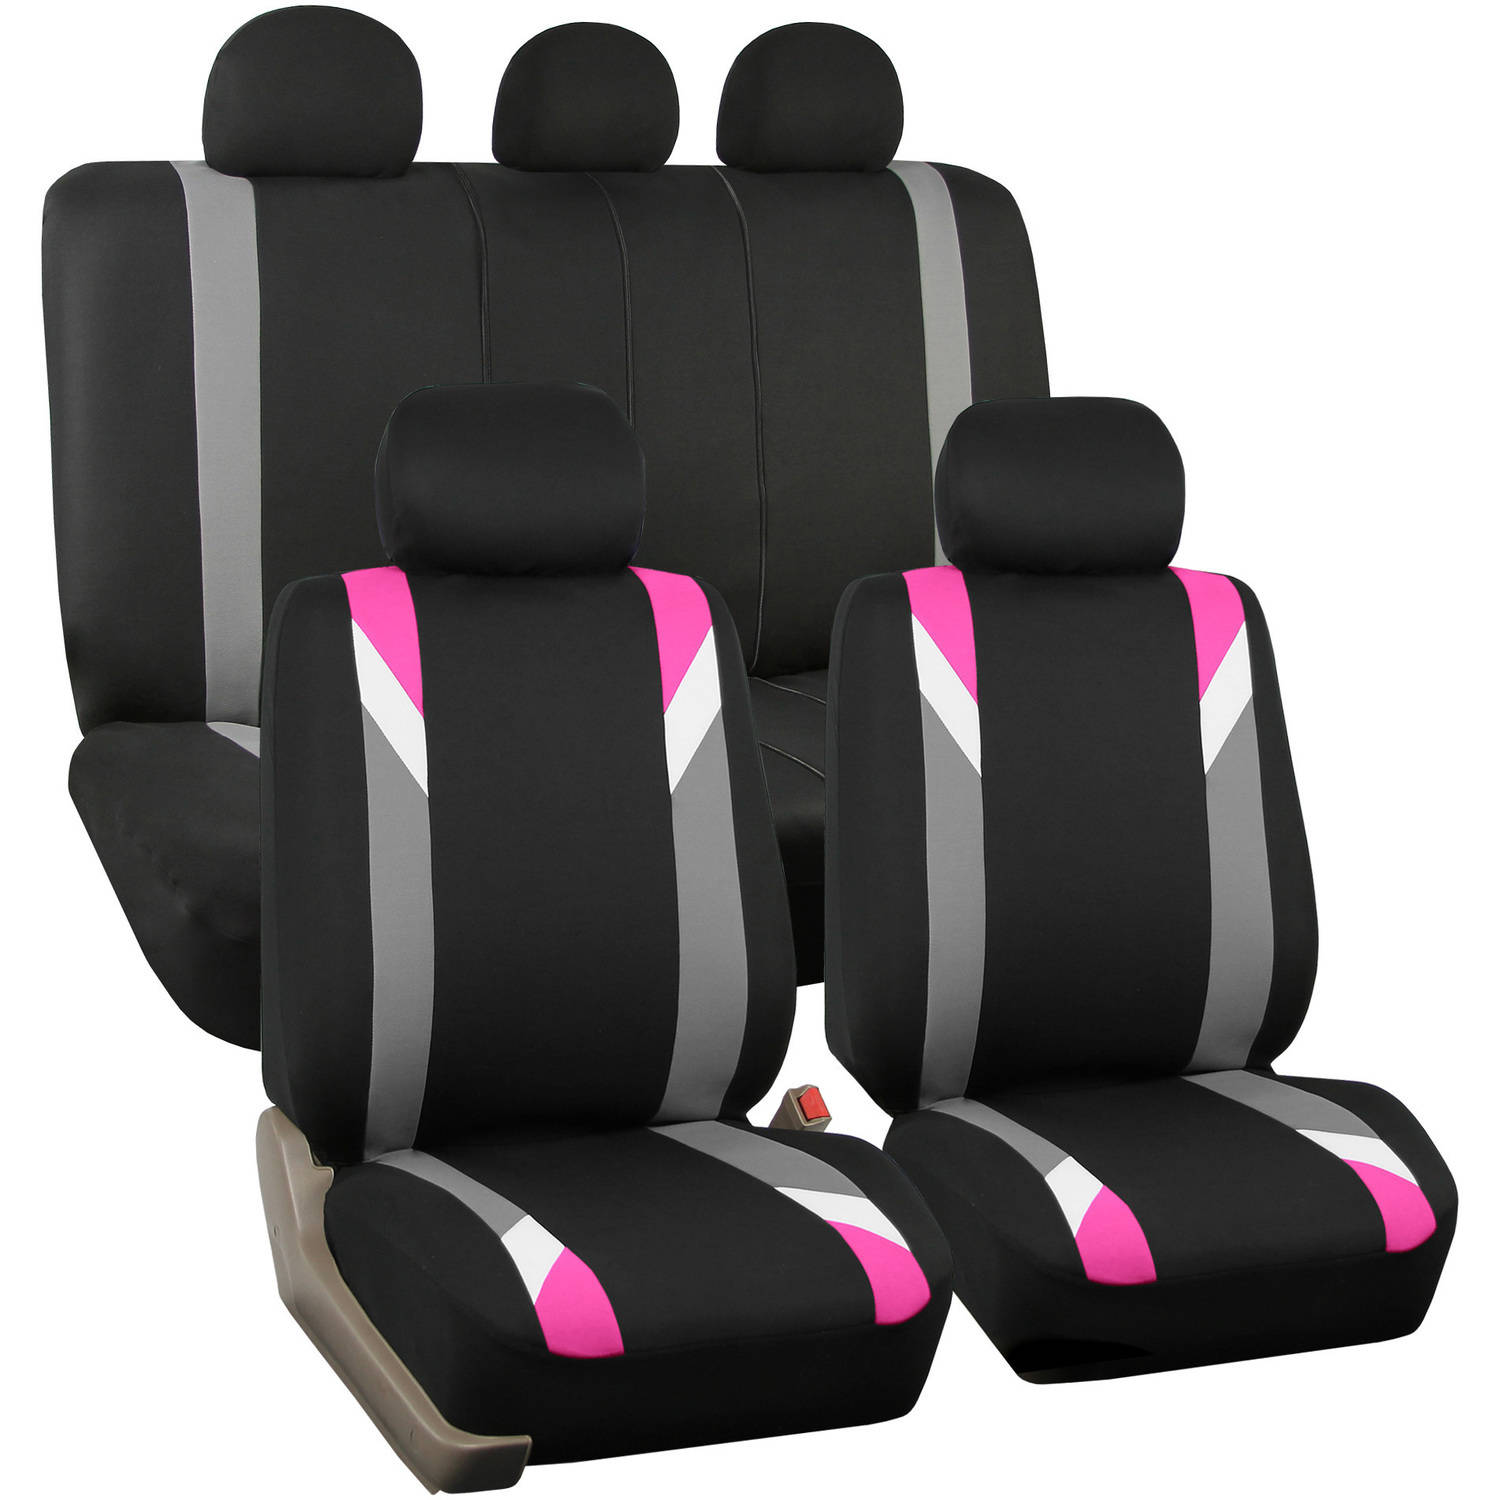 FH Group Airbag Compatible Modernistic Flat Cloth Full Set Seat Covers, Pink